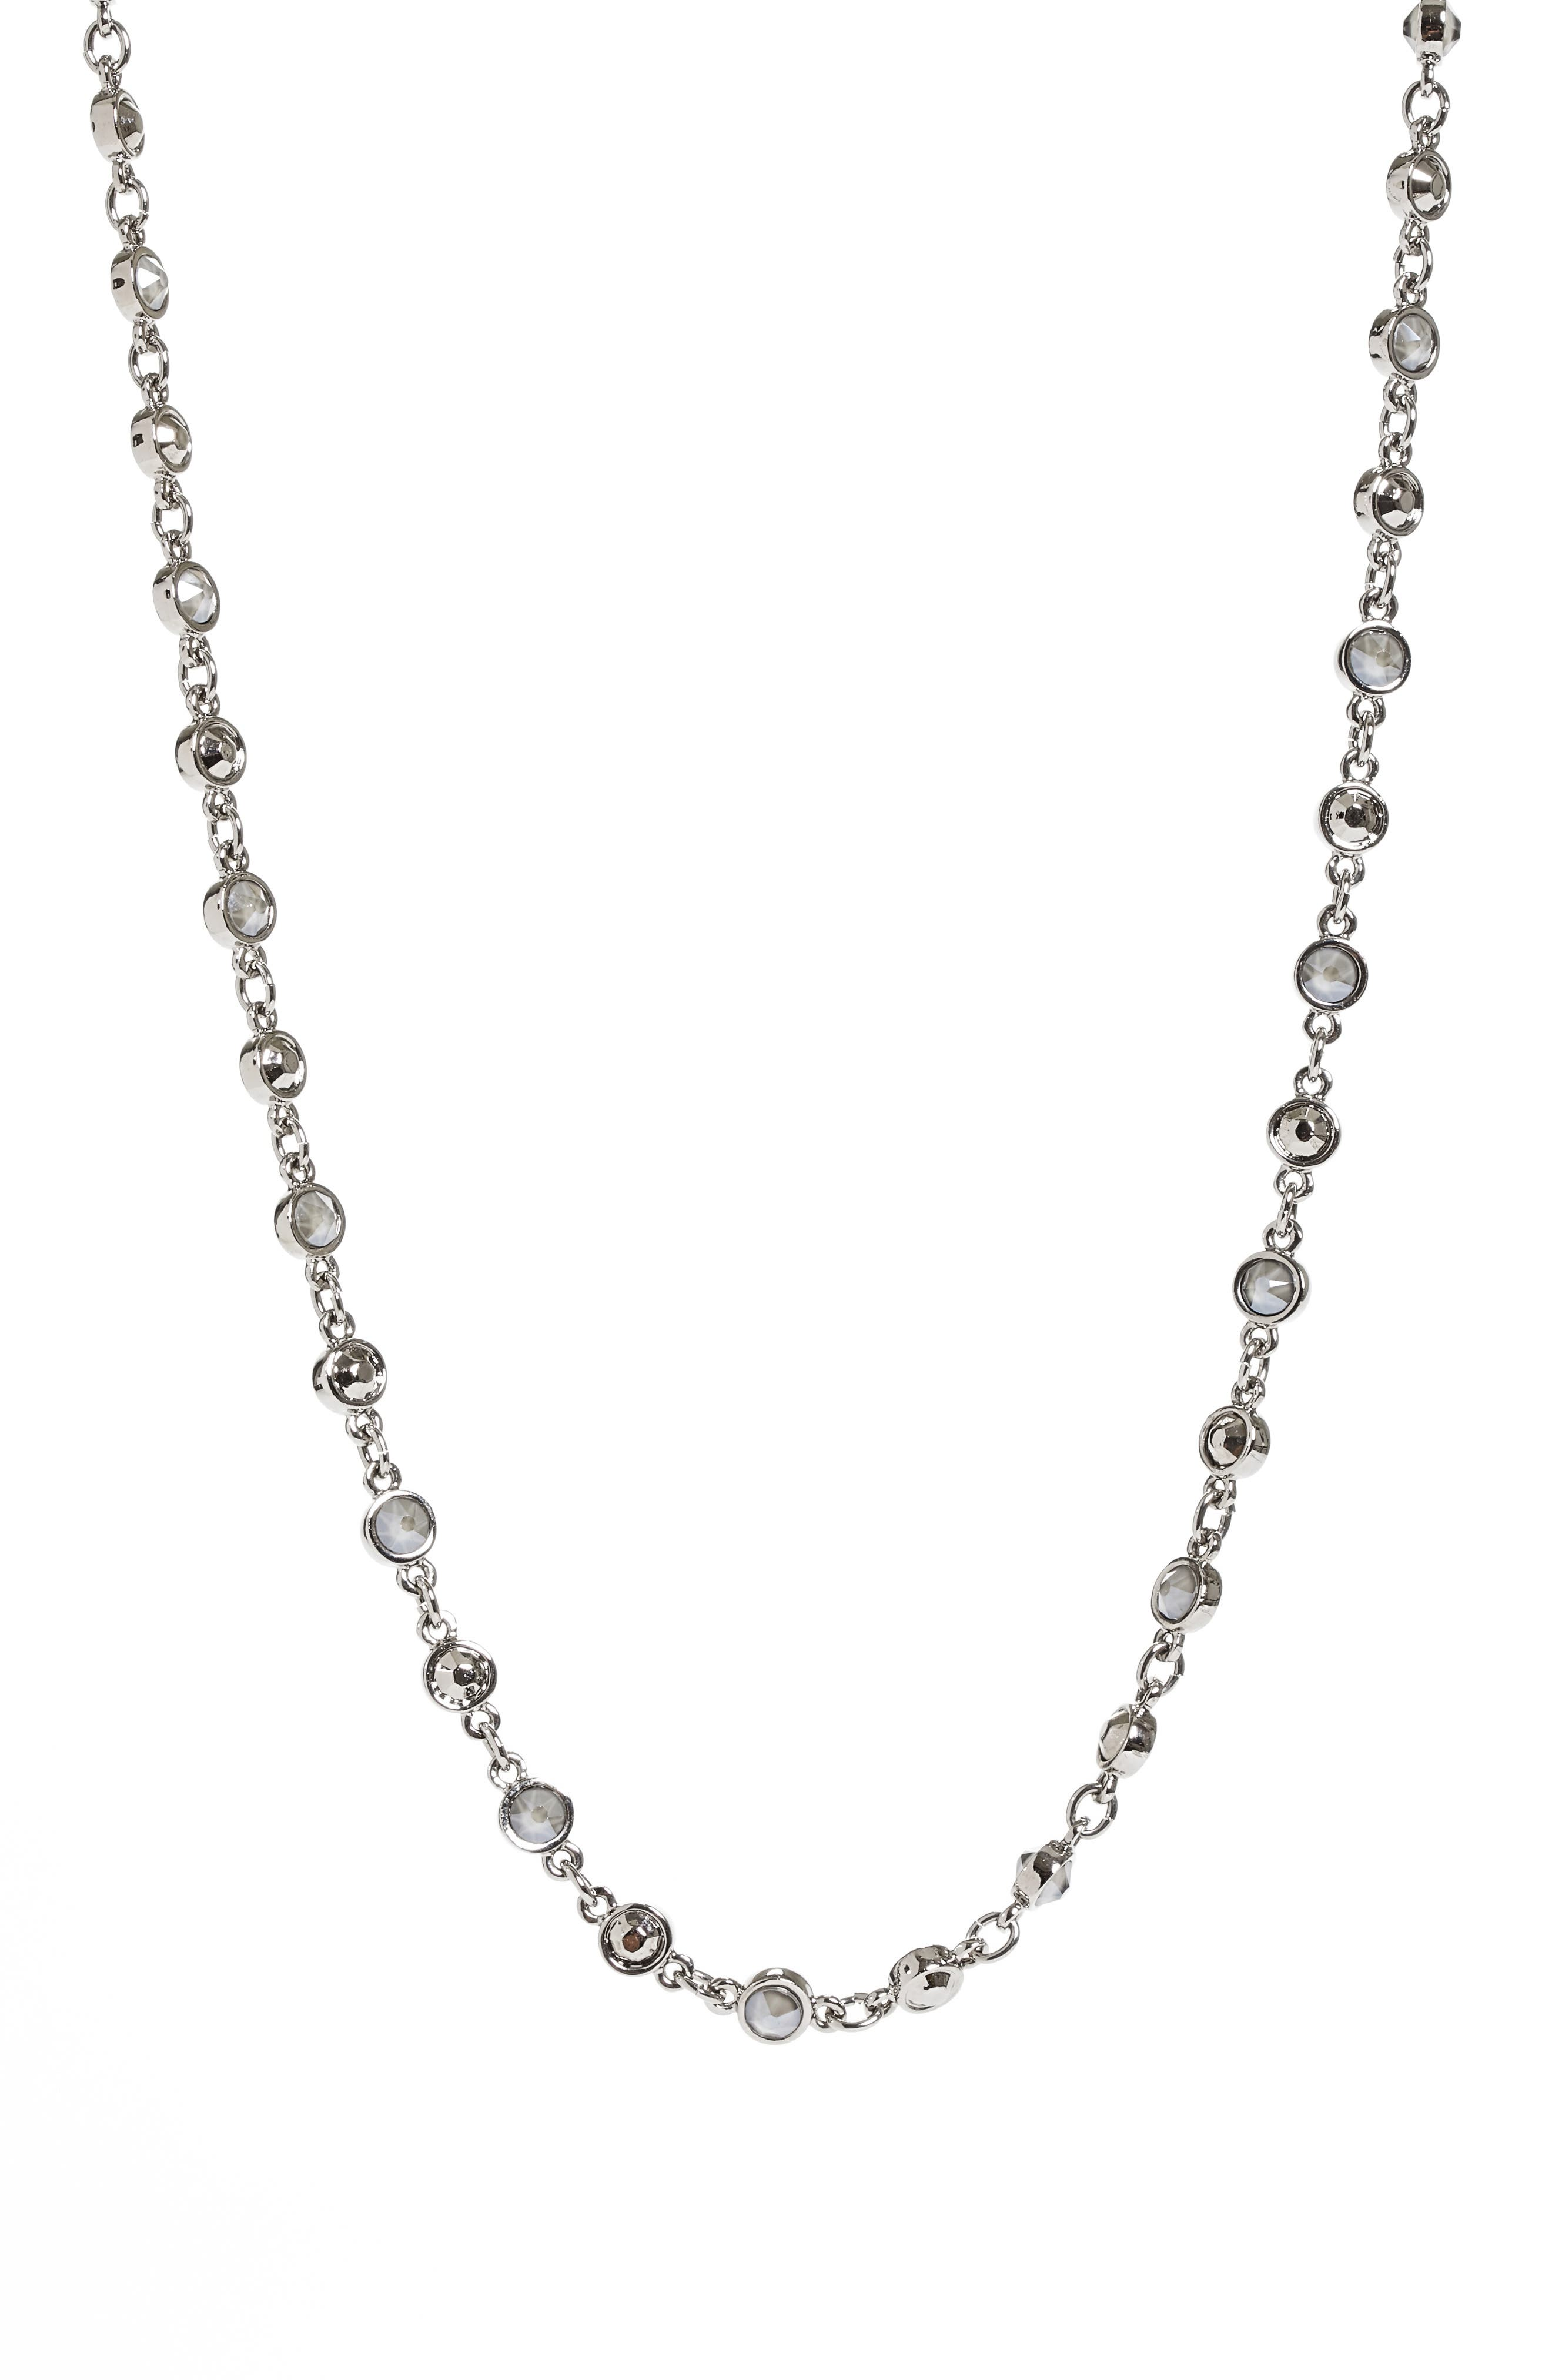 Main Image - St. John Collection Swarovski Crystal Chain Necklace